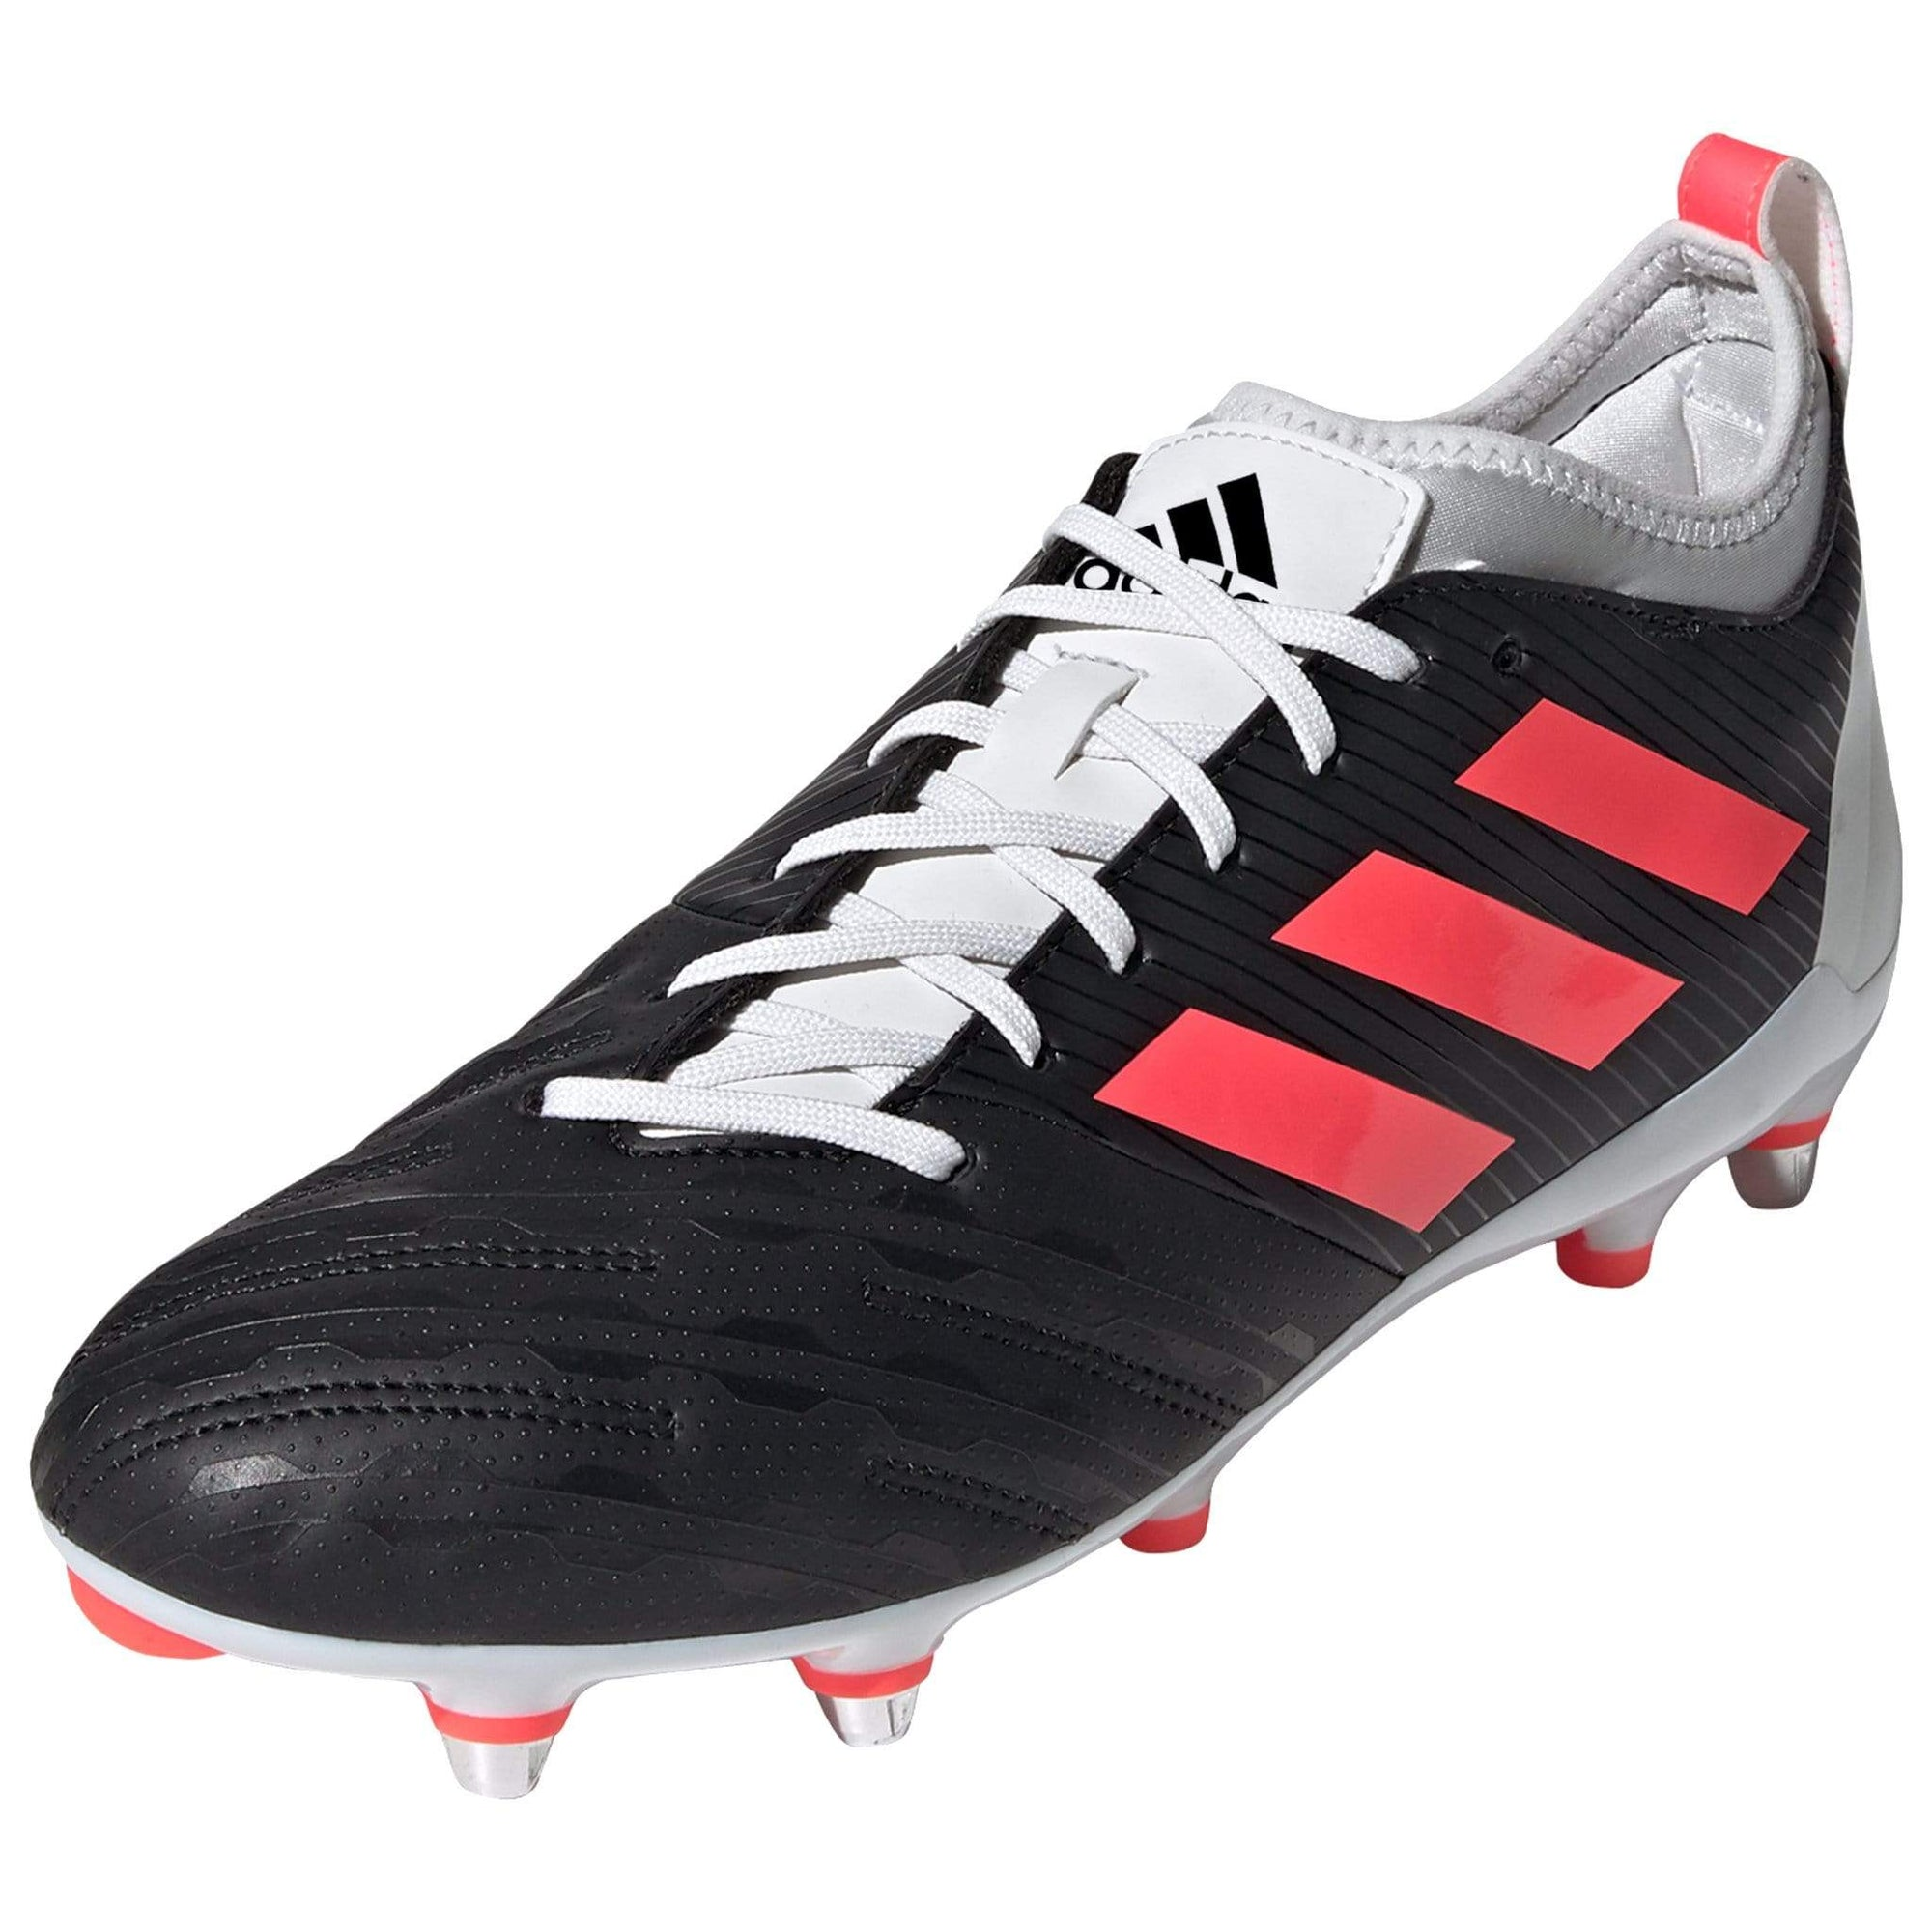 Black Adidas Rugby Boot With Signal Pink Stripes And White Laces